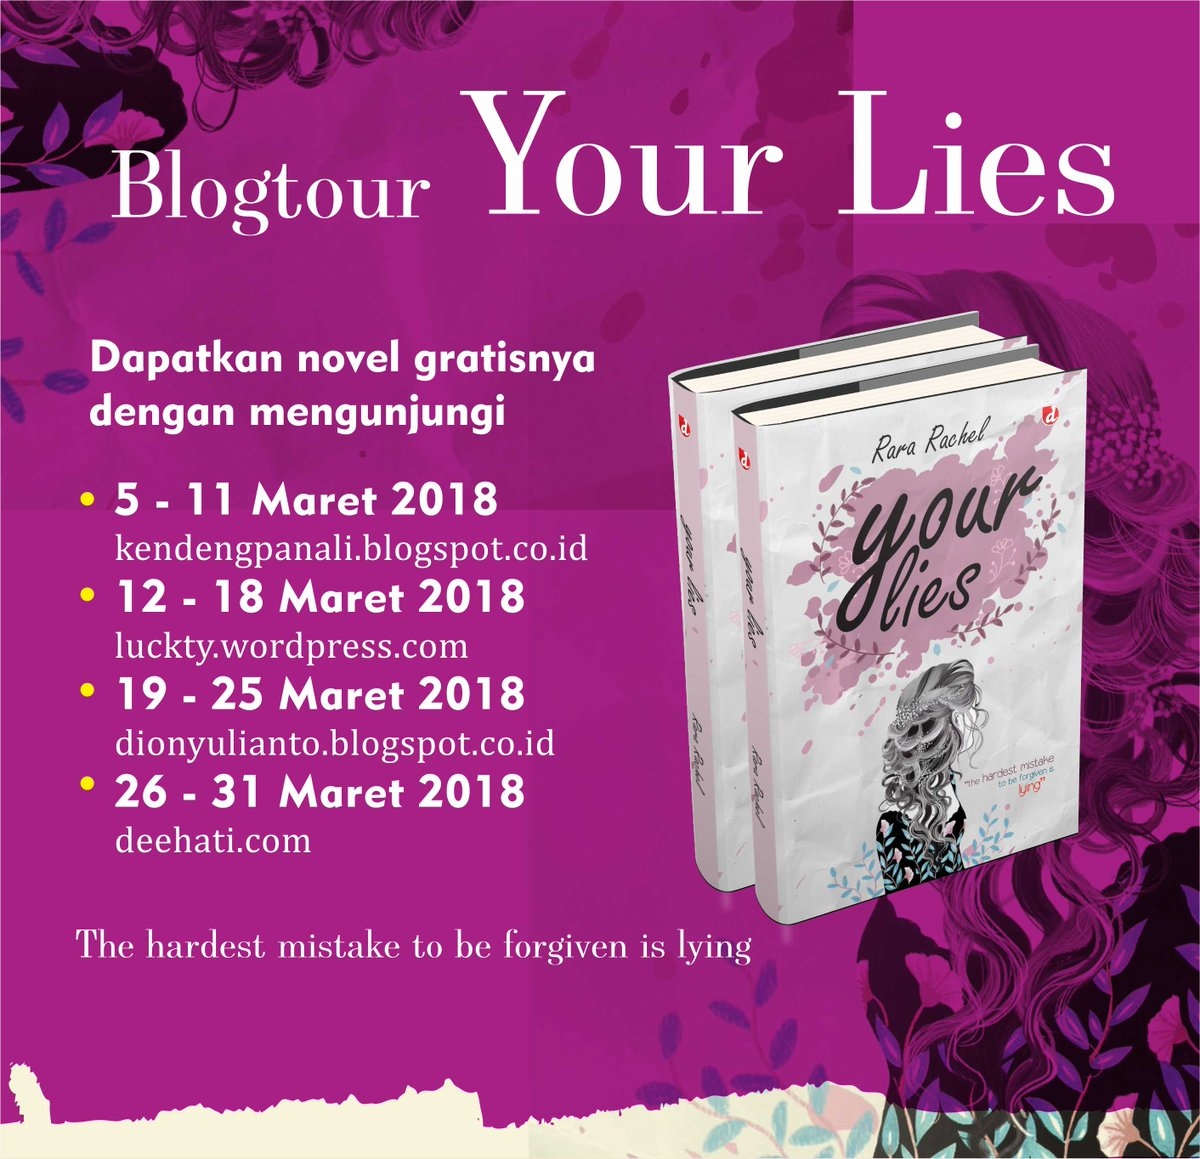 Blogtour Your Lies